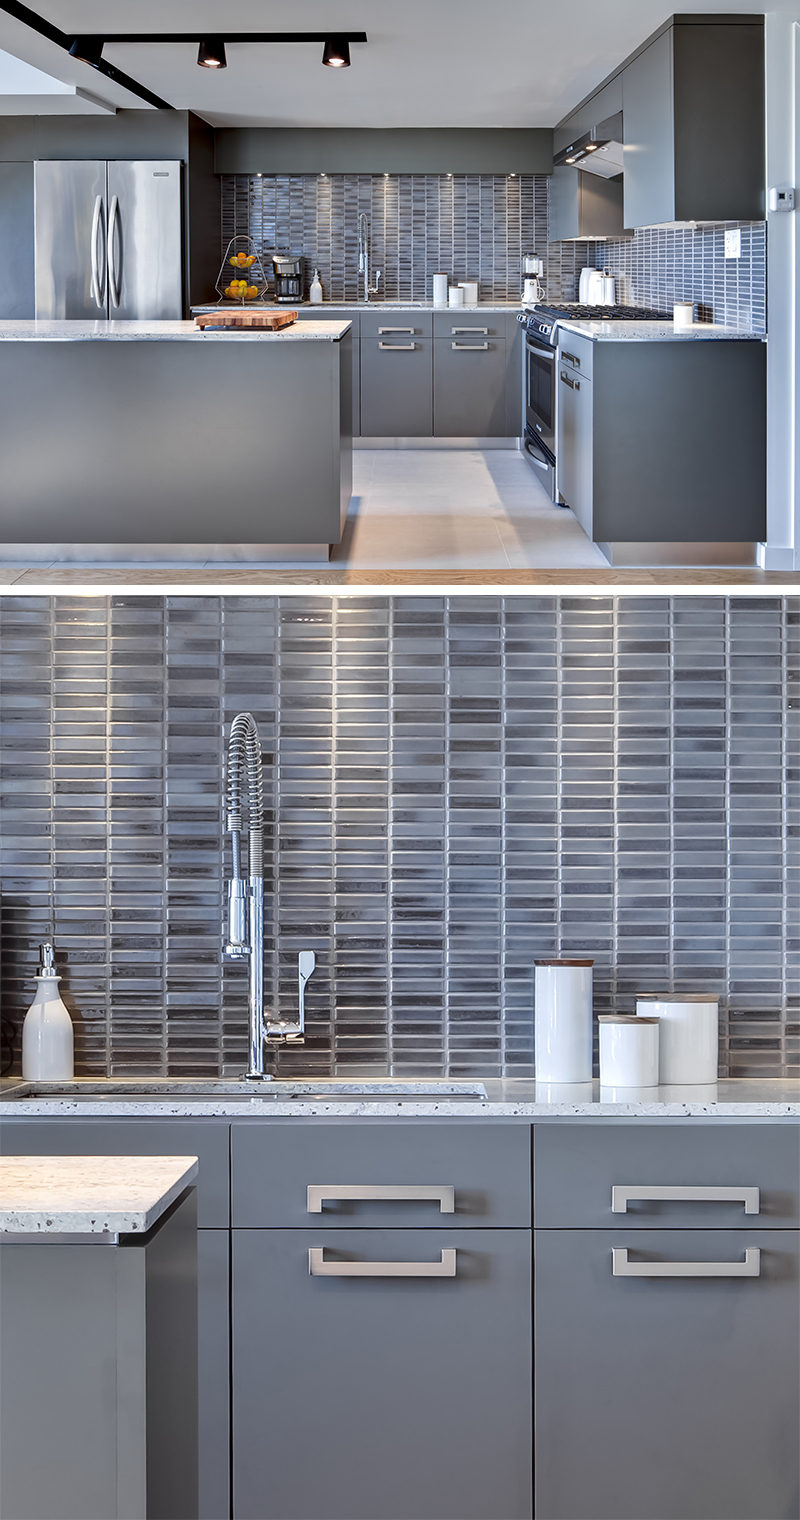 9 Inspirational Pictures Of Kitchens With Geometric Tiles // Rectangular tiles of varying shades of blue-grey compliment the colors used throughout this kitchen.